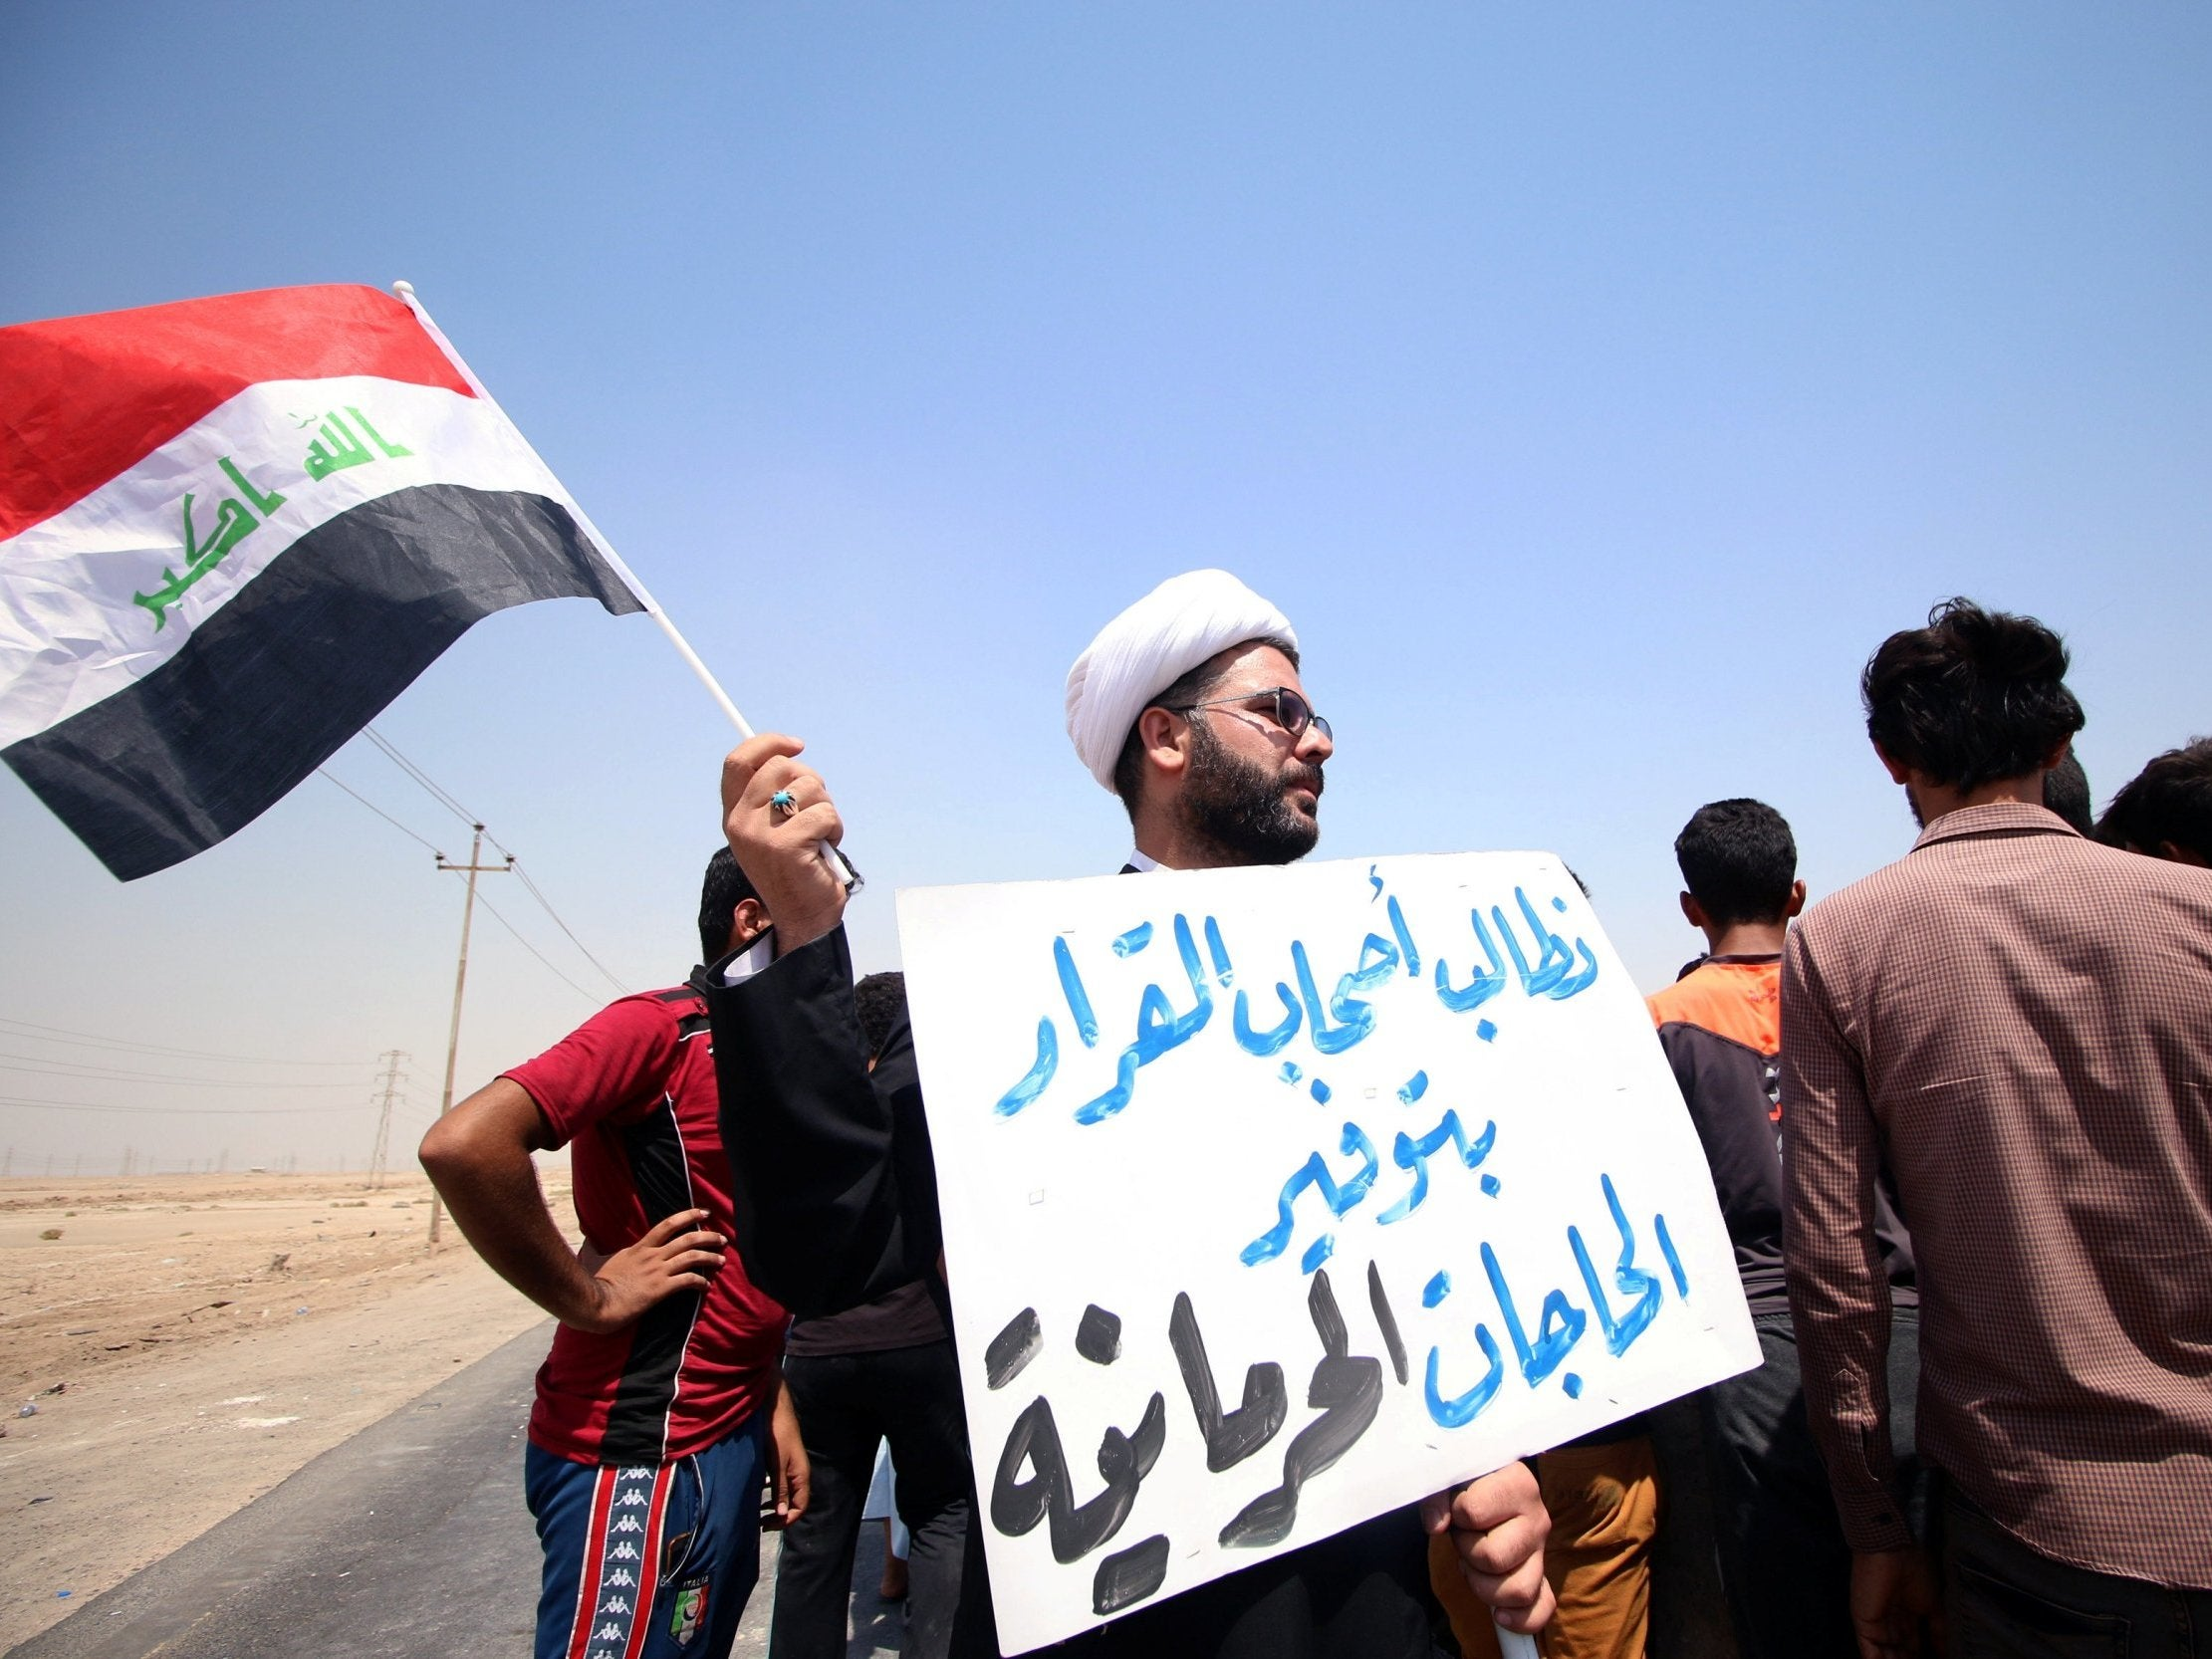 The major uprising in Basra and southern Iraq is what the world should be worrying about in the Middle East right now